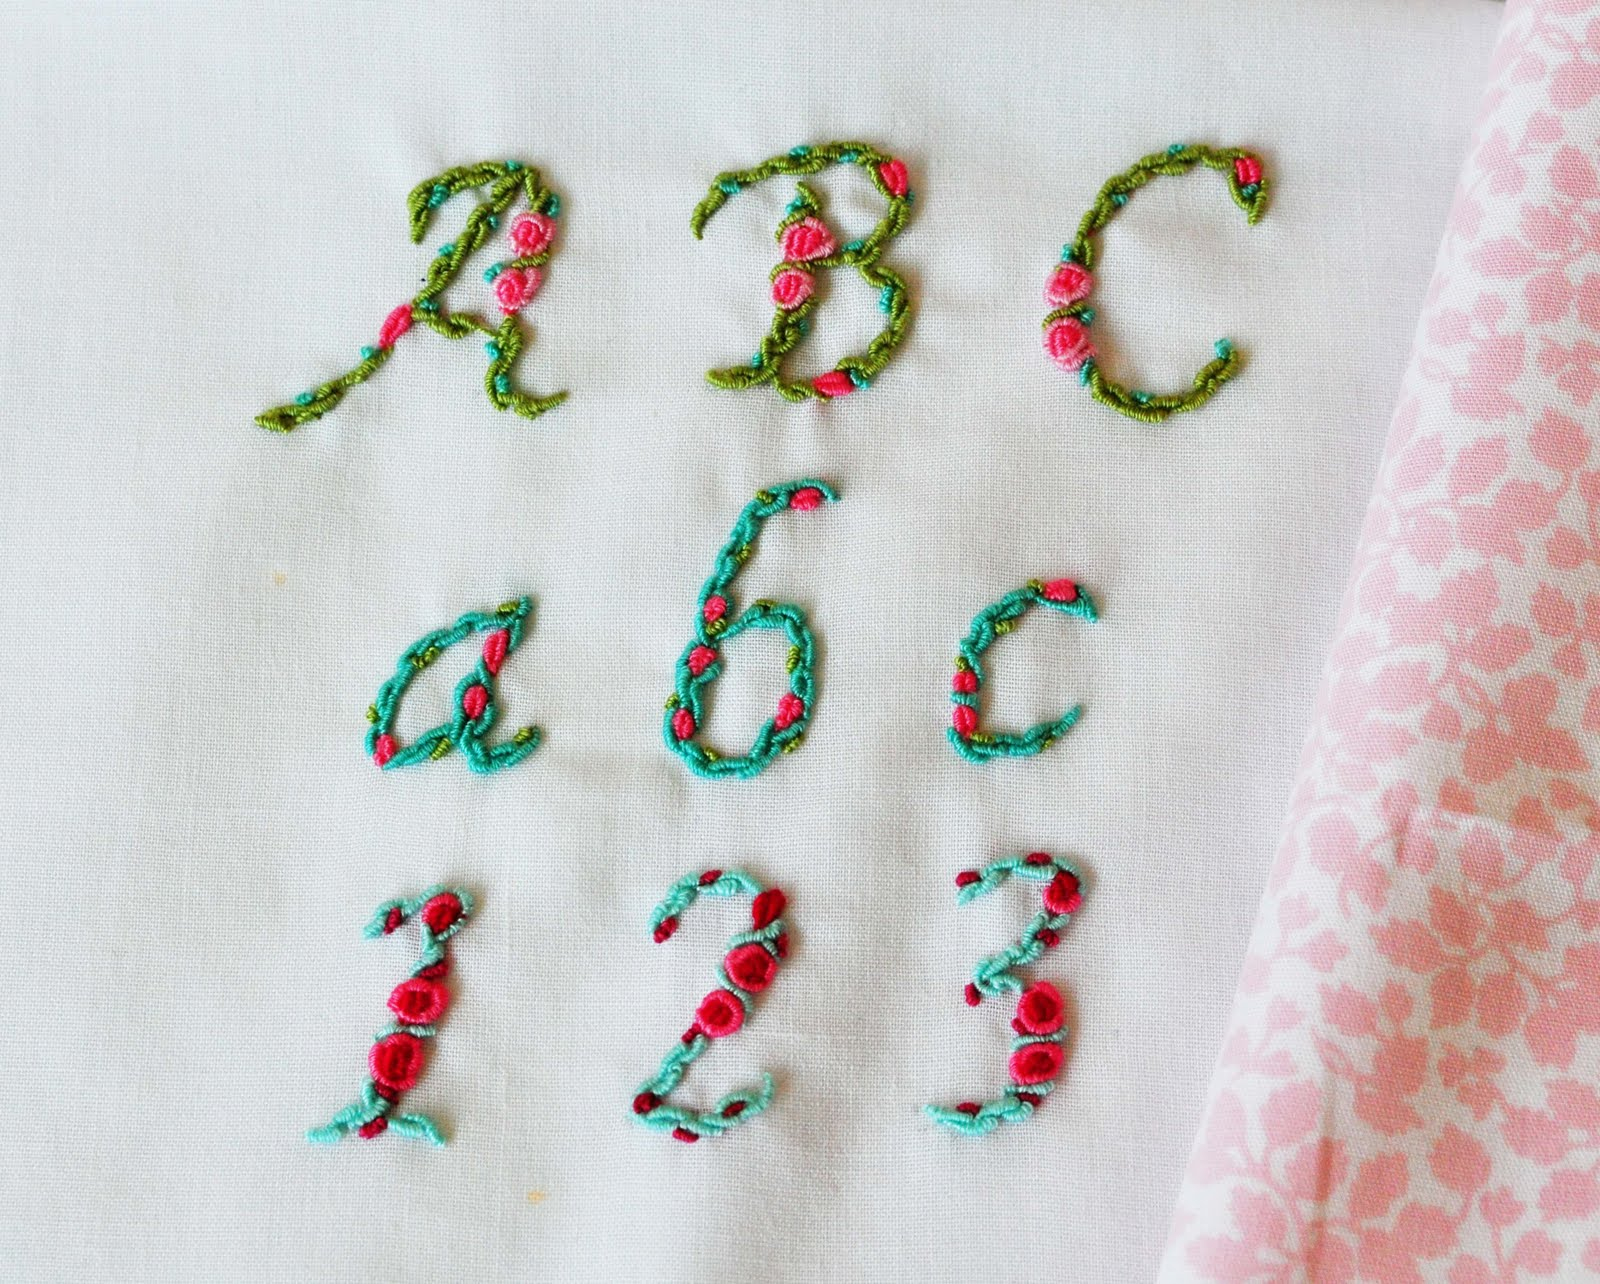 The Handmade Dress Hand Embroidered Alphabet